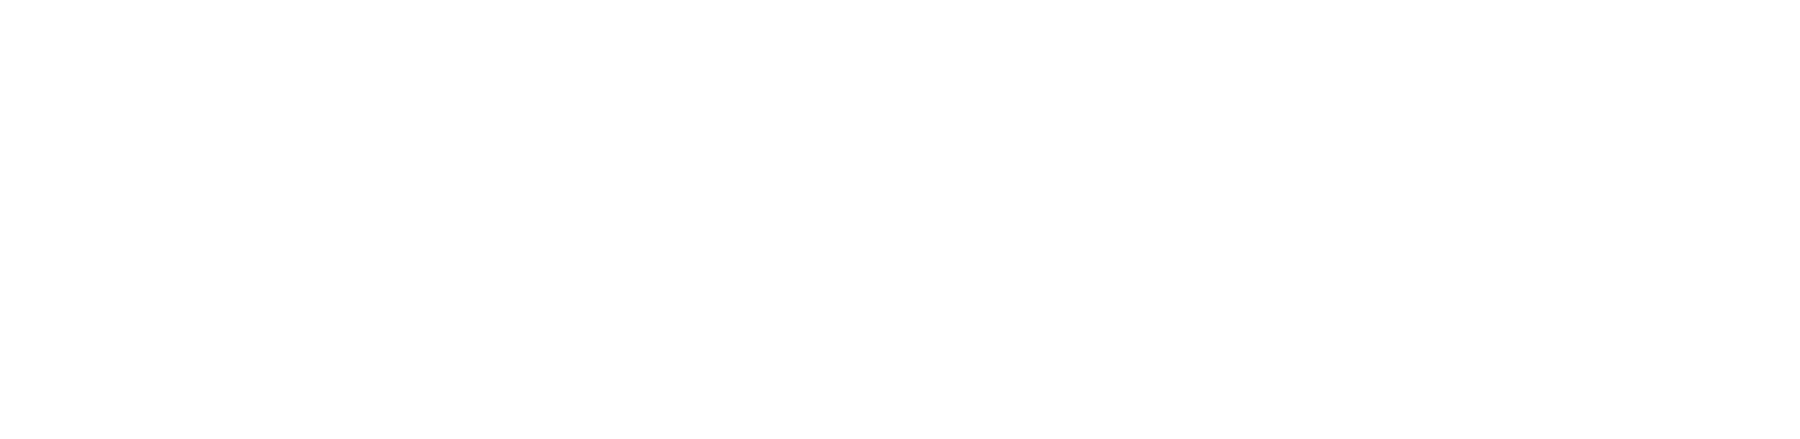 LIVE DVD&Blu-ray&CD Official髭男dism one-man tour 2019@日本武道館